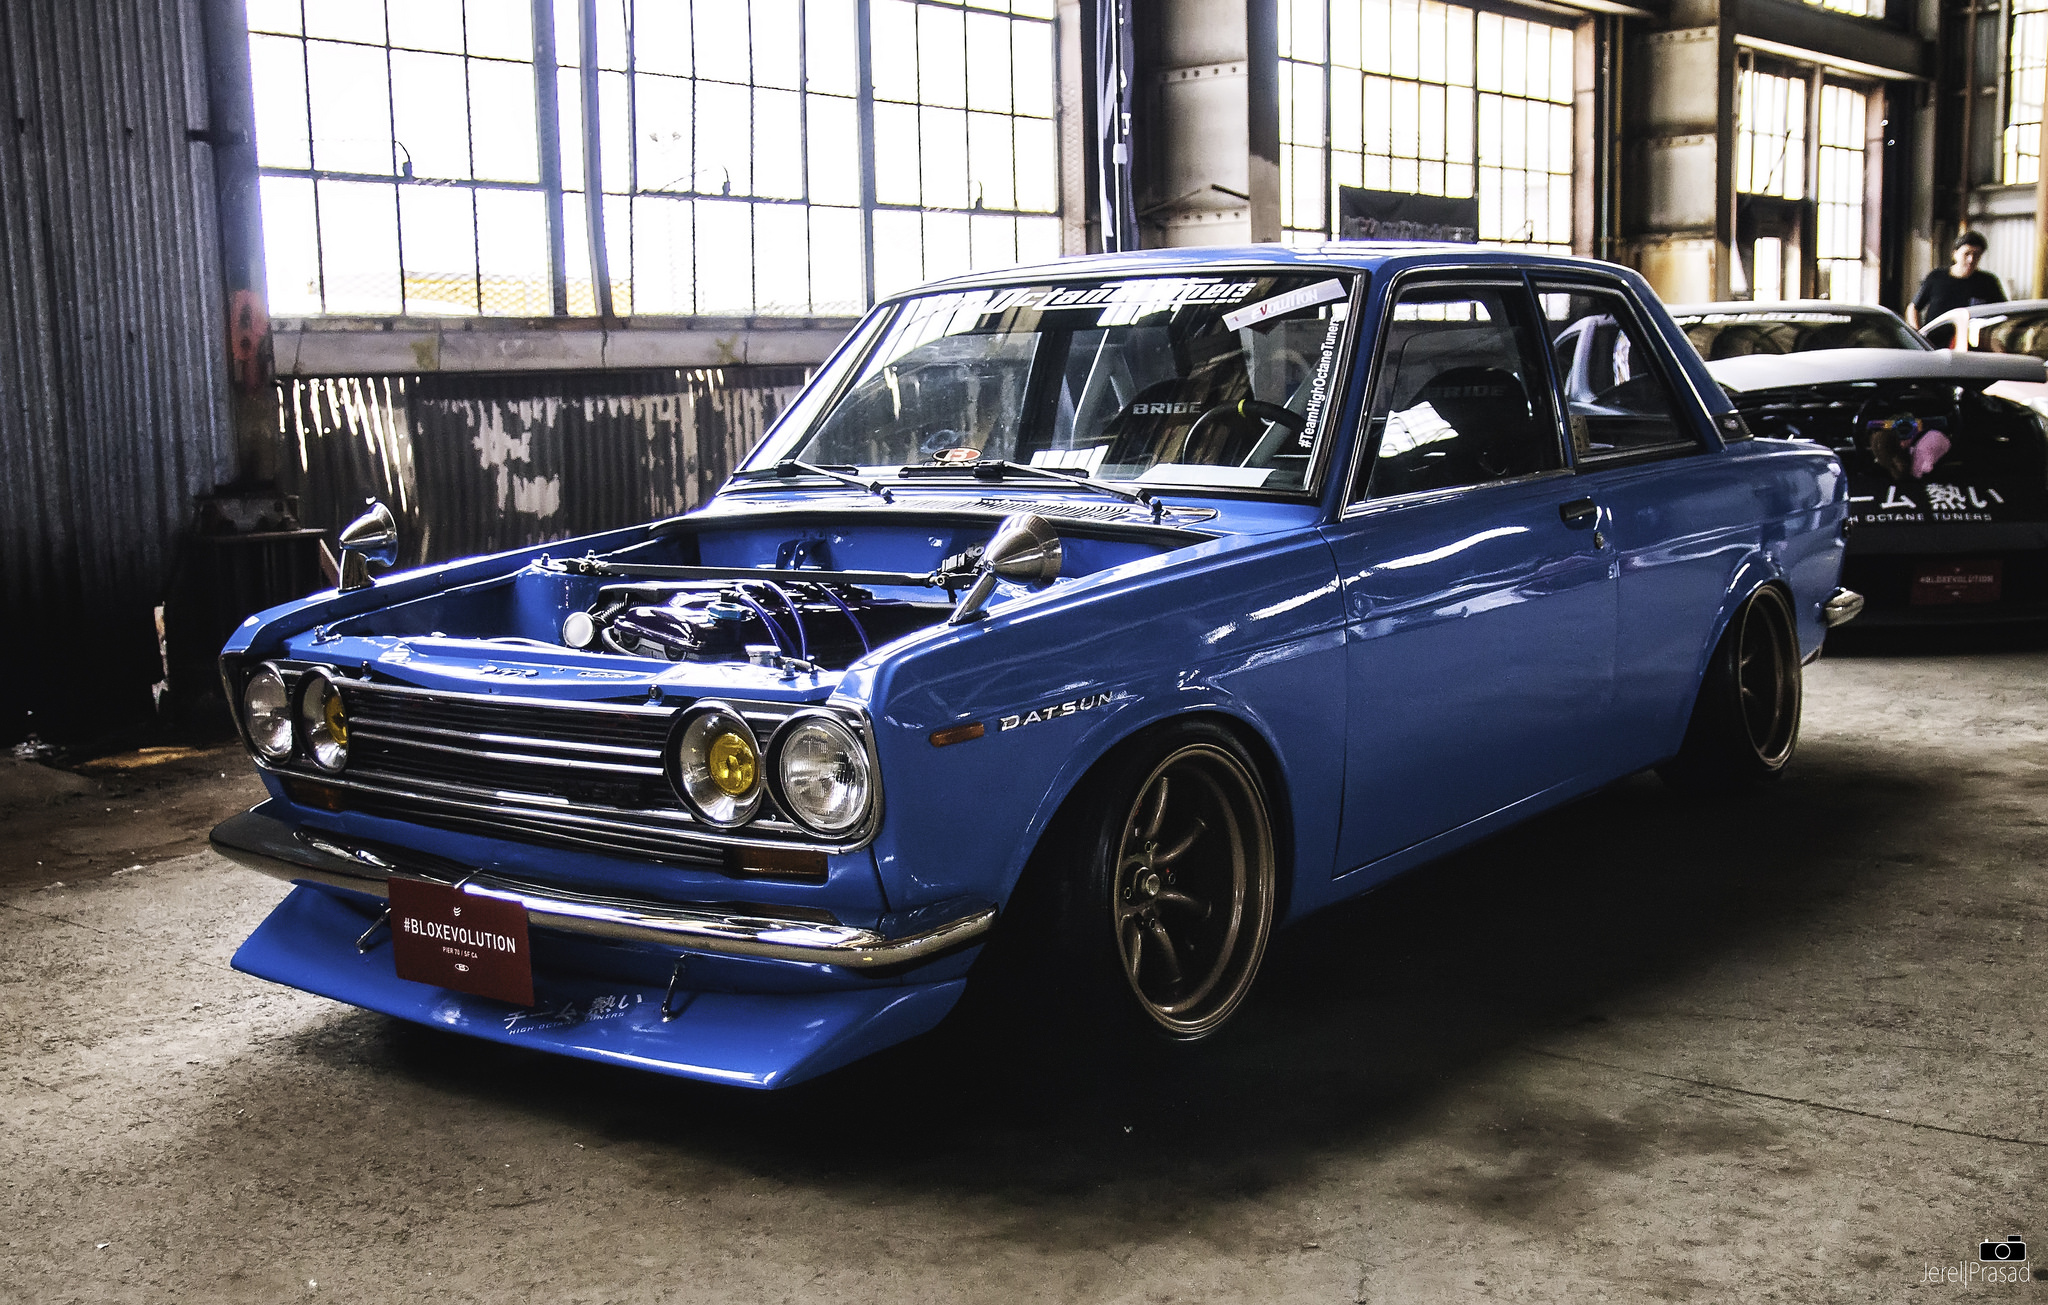 Datsun 510 Looking Good Stancenation Form Gt Function